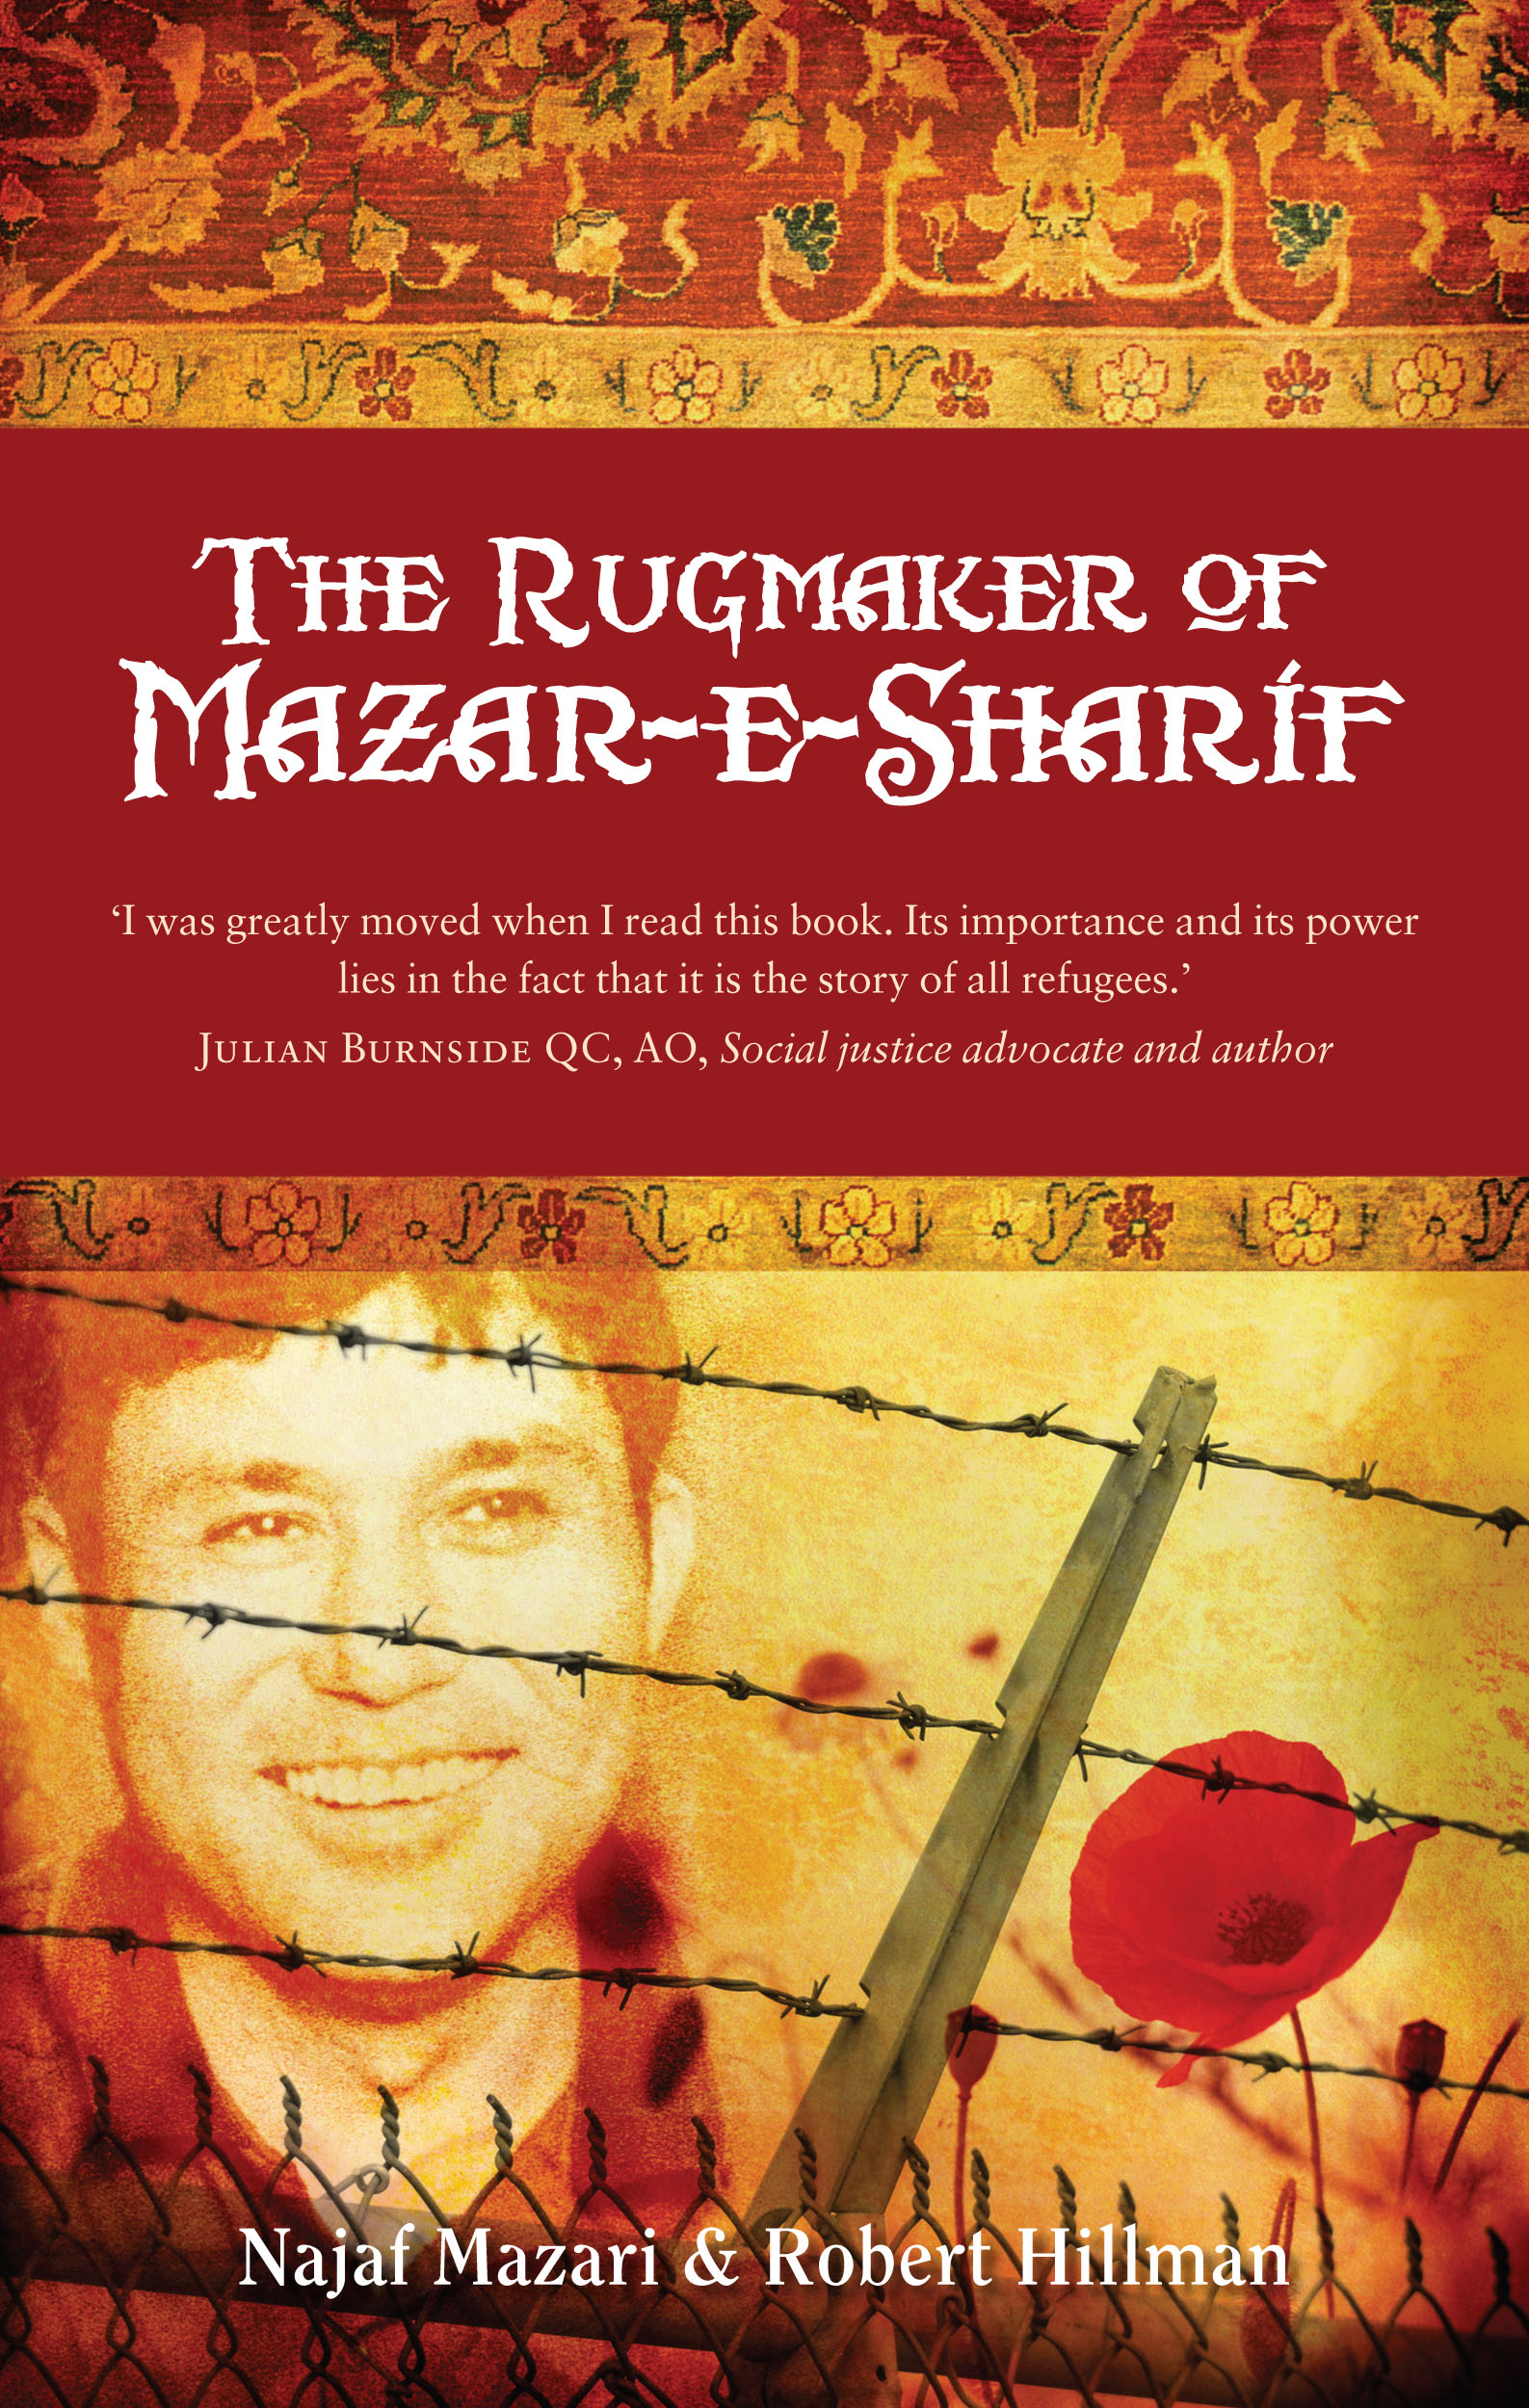 quotes on conflict from the rugmaker of mazar e sharif Rug maker essay the novel 'the rugmaker of mazar-e-sharif' is written by najaf mazari and robert hillman, illustrates the life and journey of an extraordinary human being.